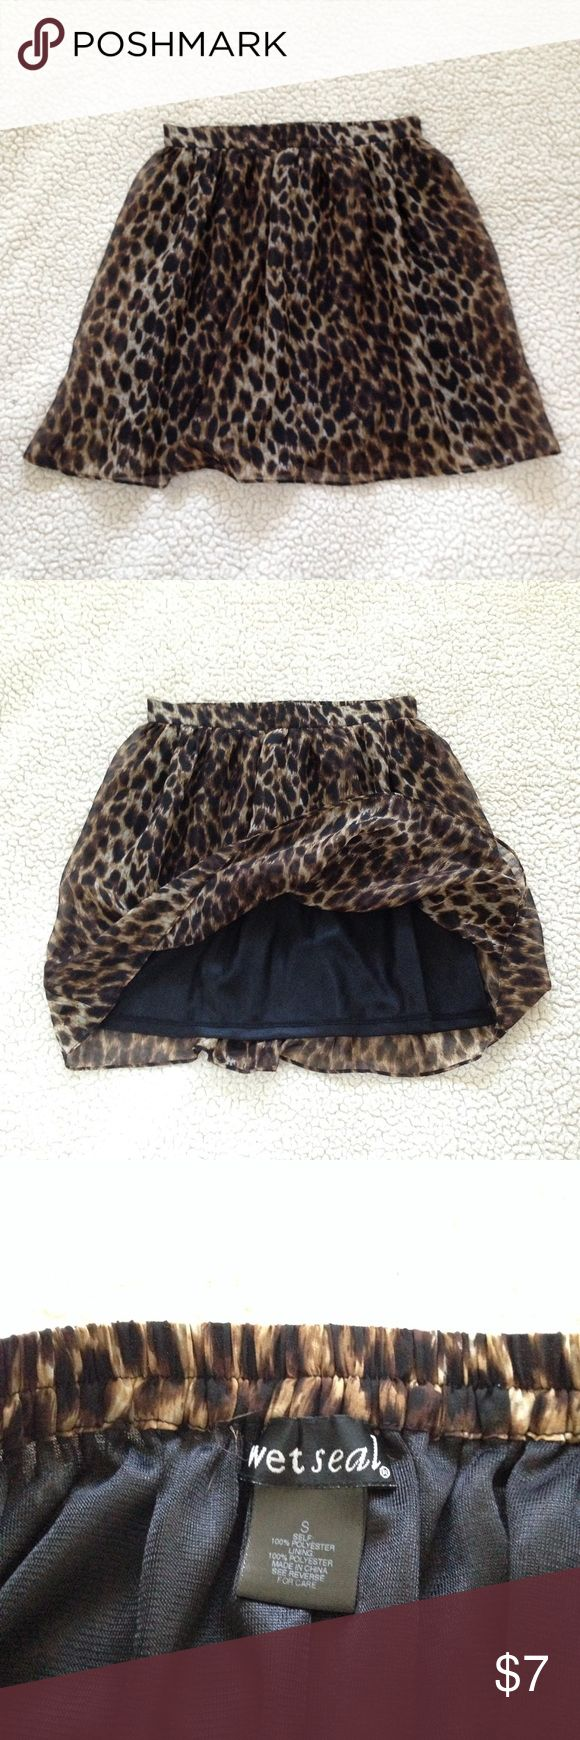 Wet Seal Cheetah Skirt Super soft double lined cheetah skirt • Size Small • Elastic waistband  • Excellent condition • Light weight and flowy!  Tags: charlotte russe, forever 21 Wet Seal Skirts